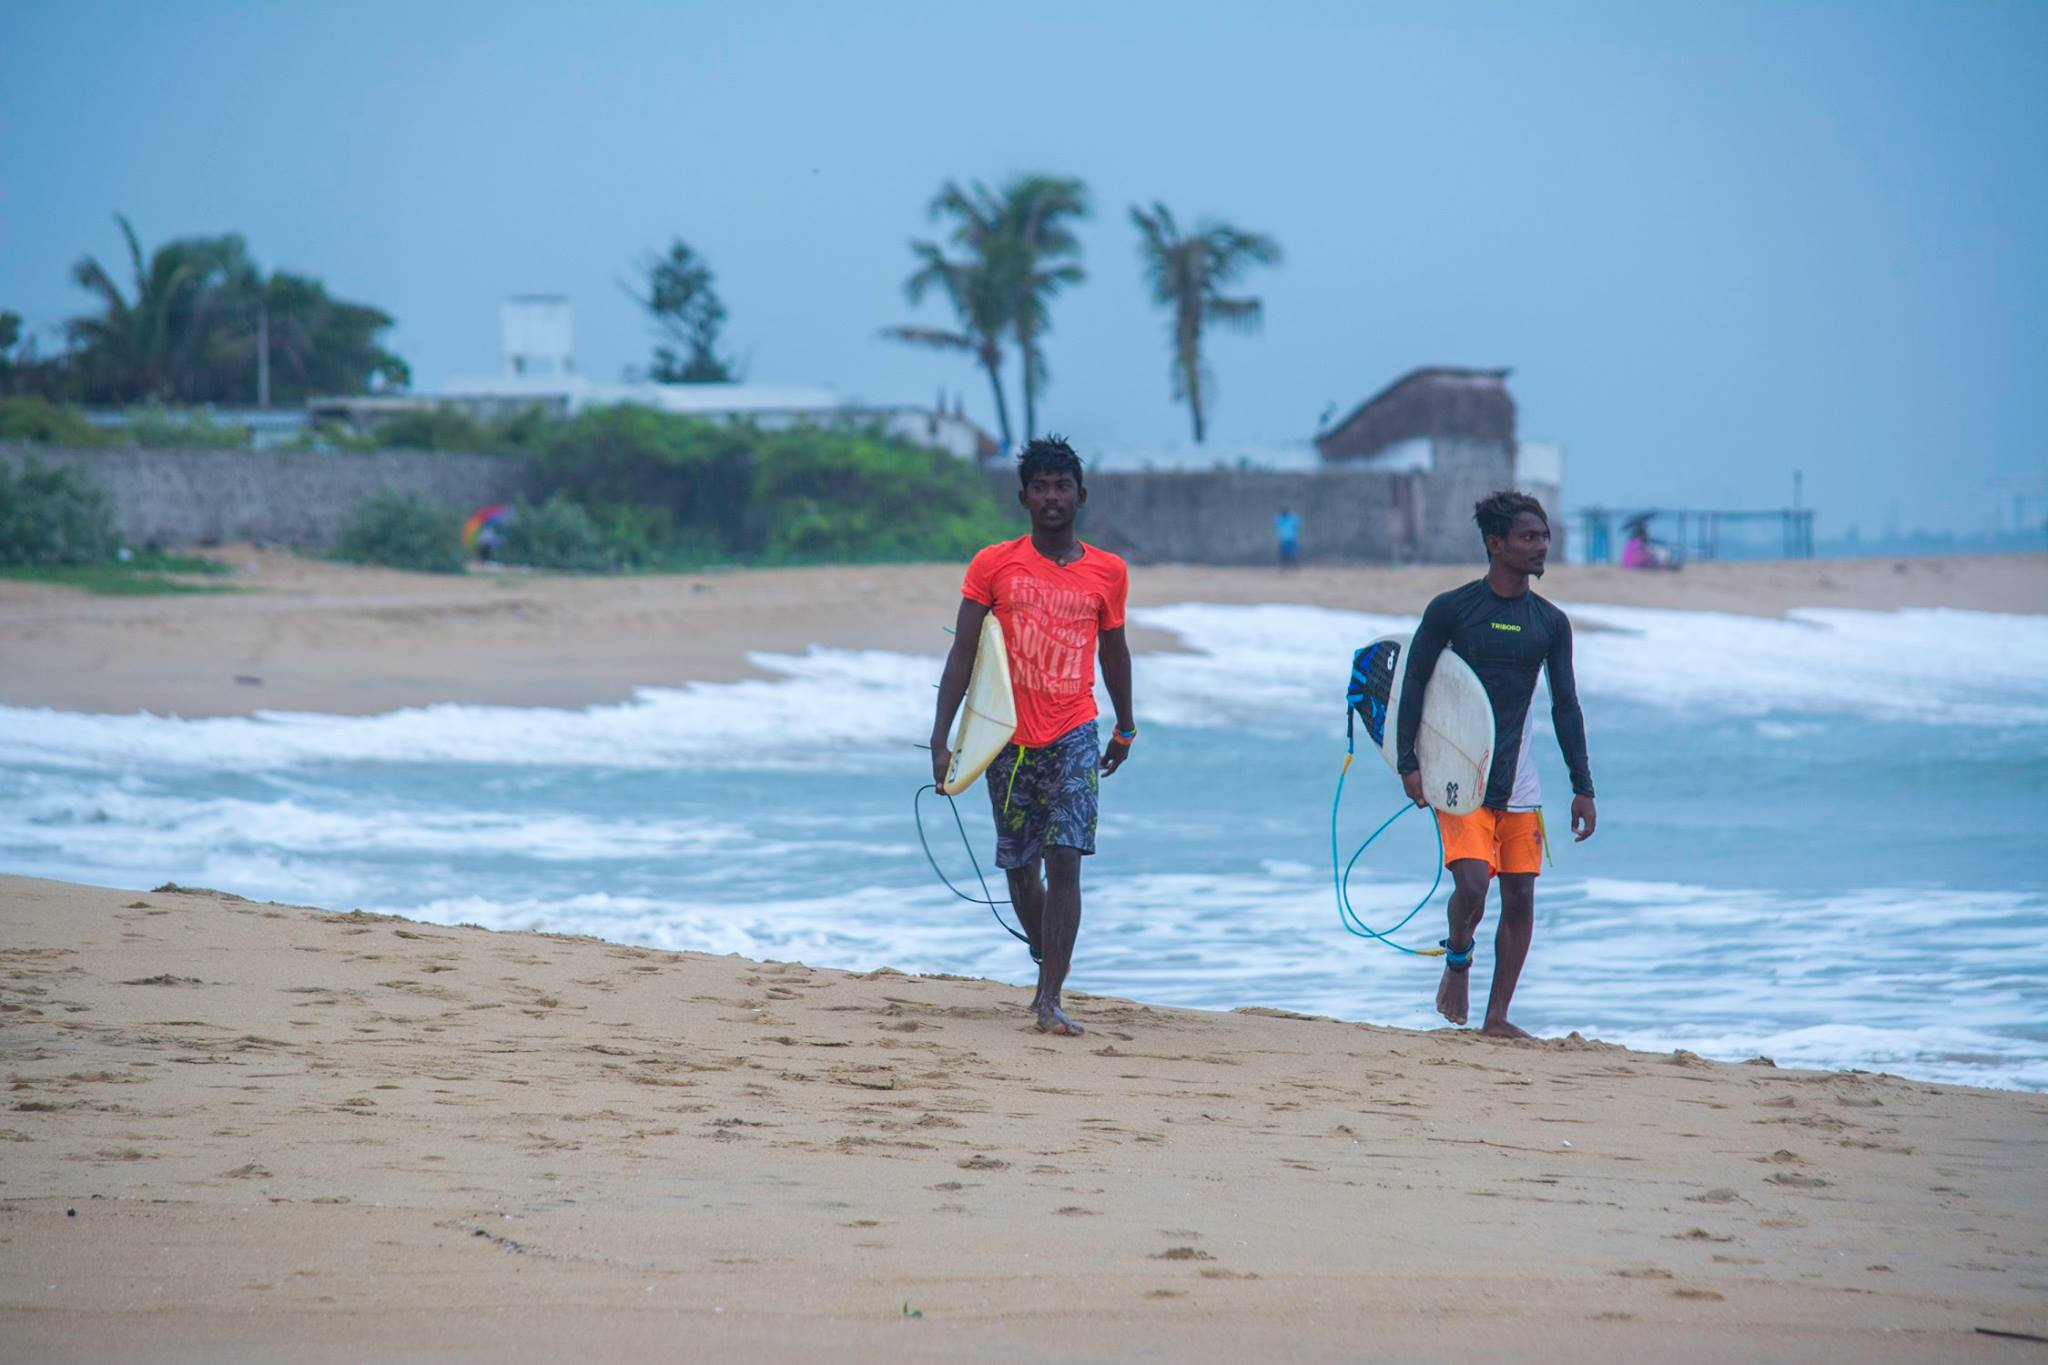 Wet Weather and Swelling Surfs